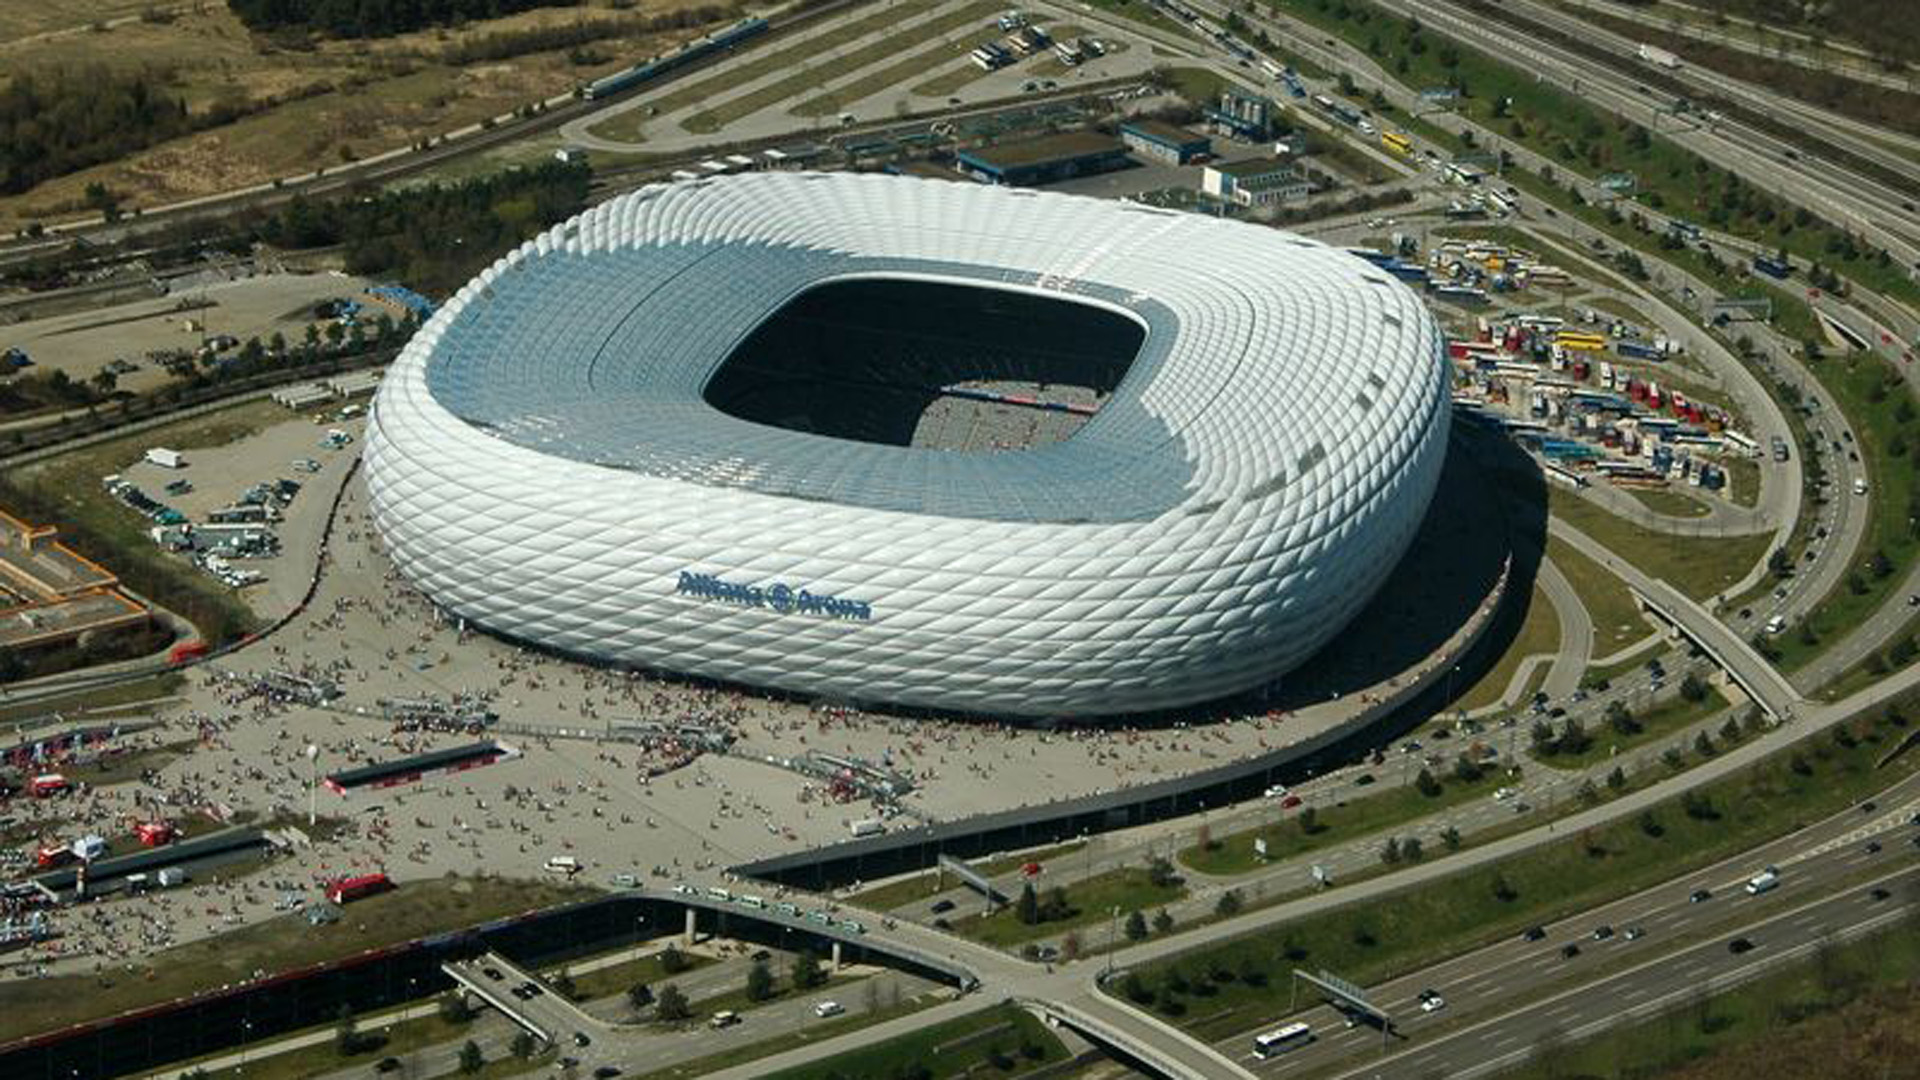 stadio calcio europa allianz arena